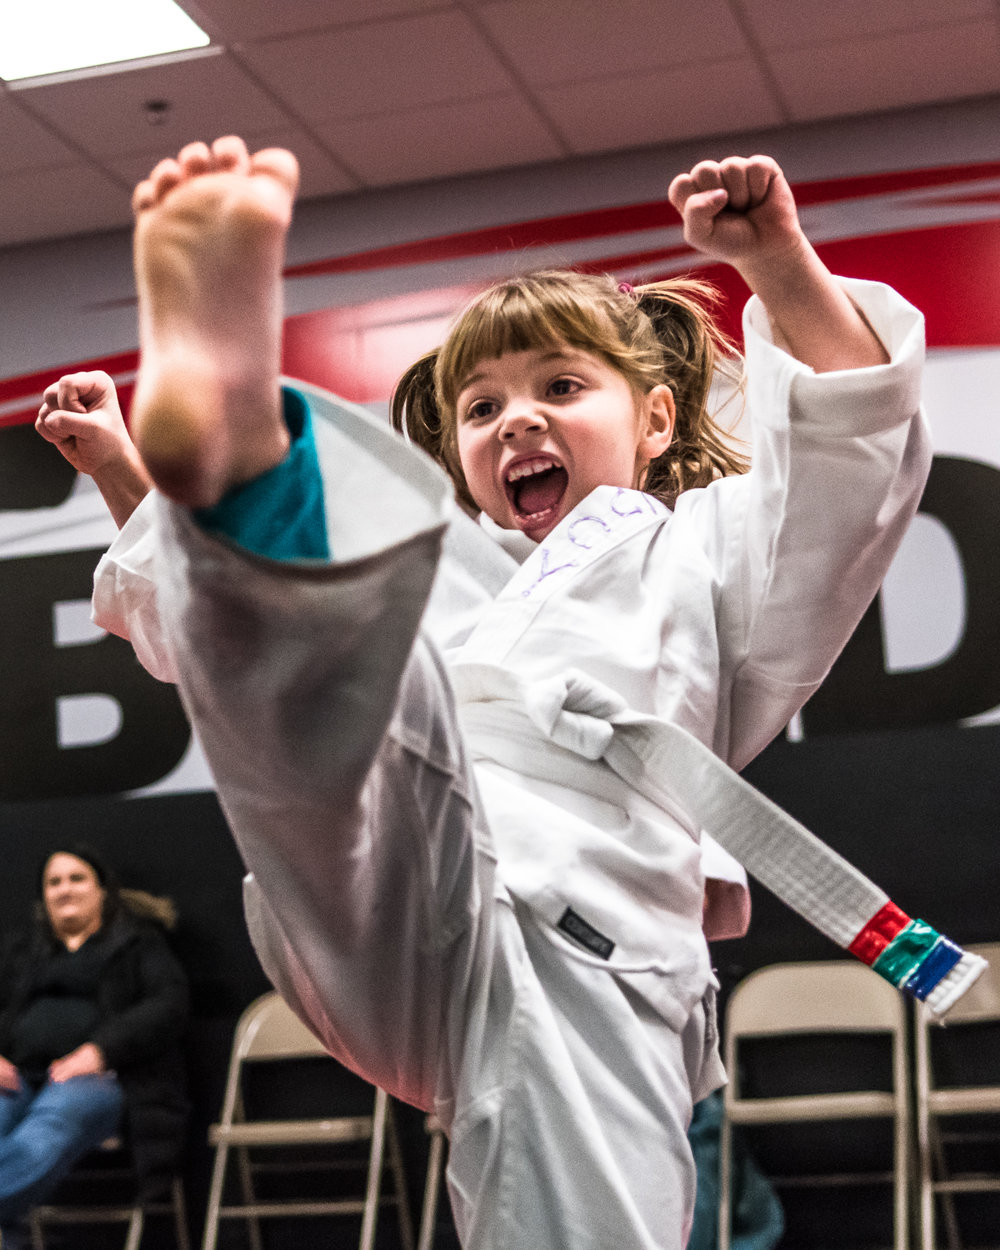 Five year old Lucy Worrell, Racine, performs a high kick in the first practice rounds of her Little Dragons karate class at Black Belt Karate in downtown Racine Friday night.